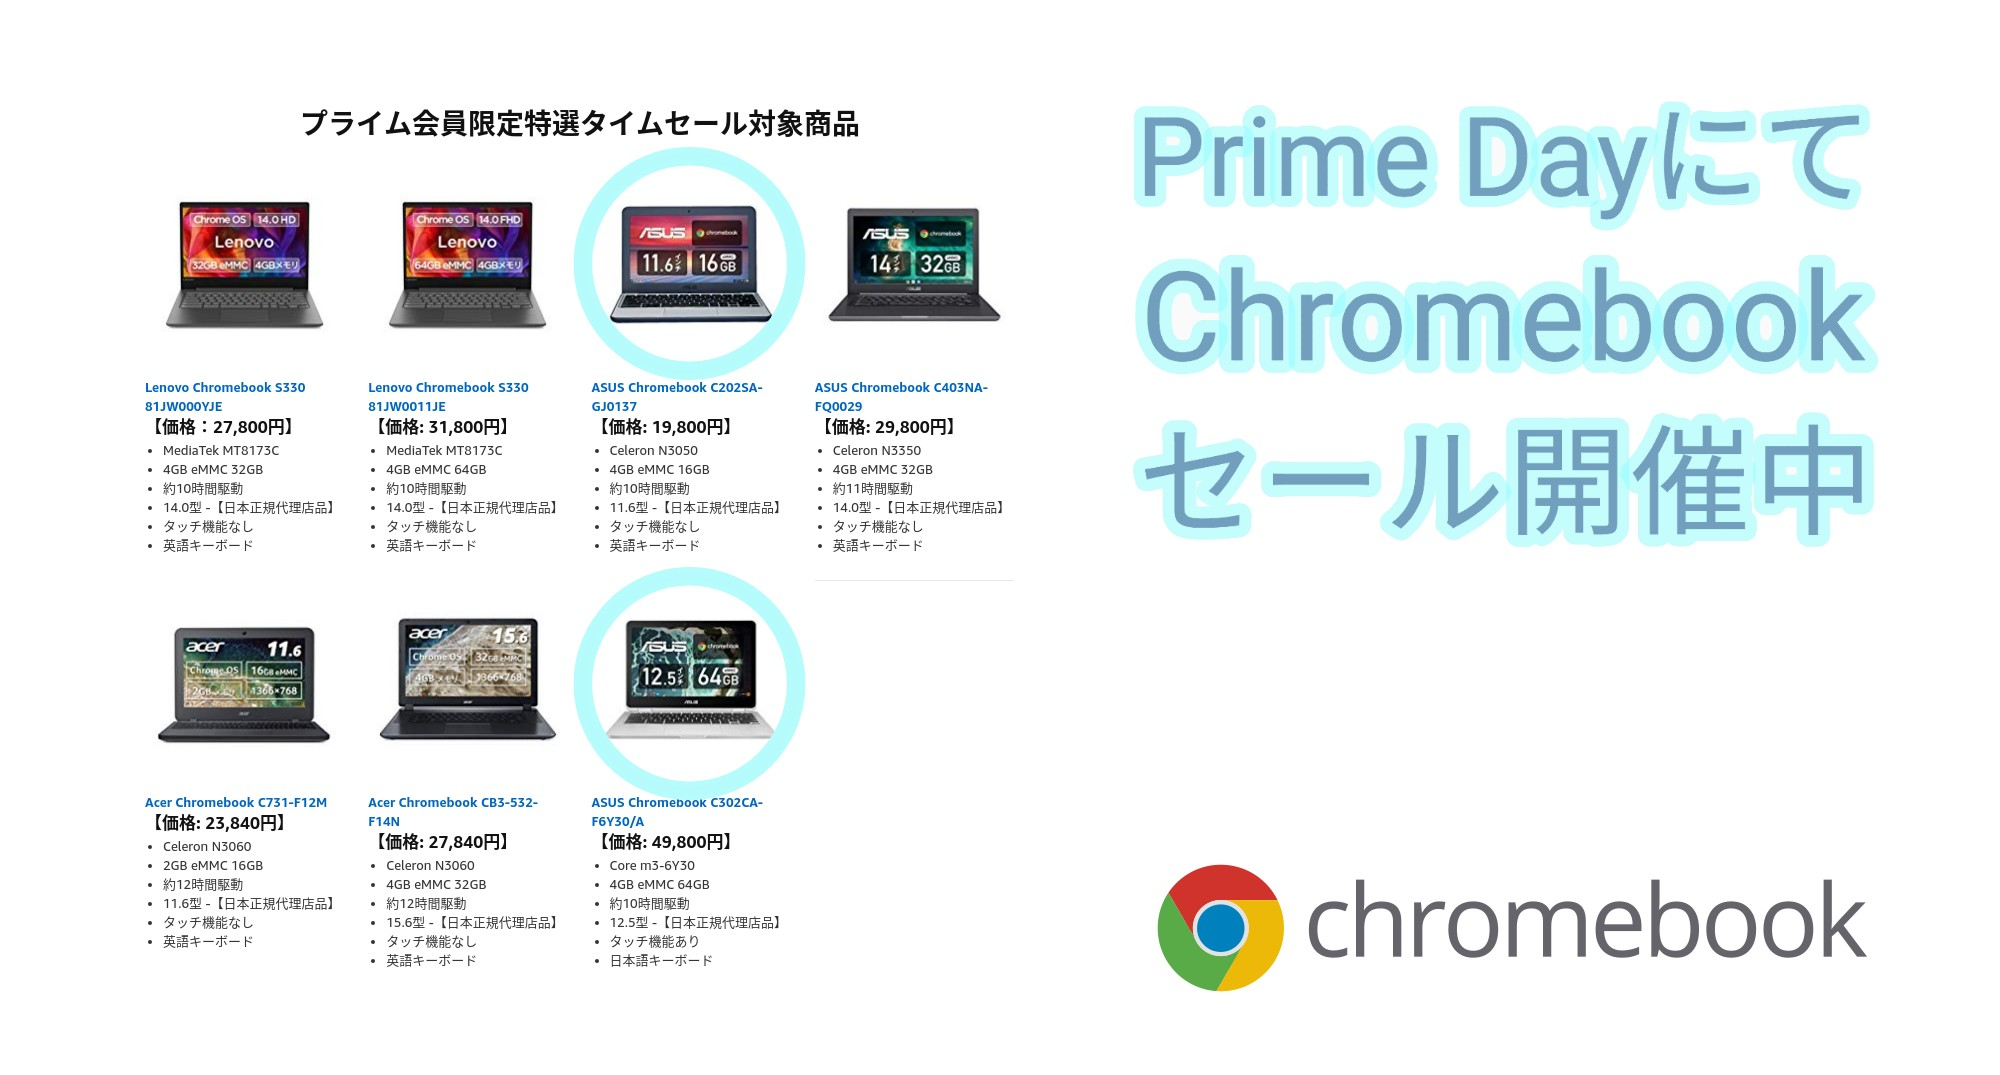 Chromebook on Prime Day 2019